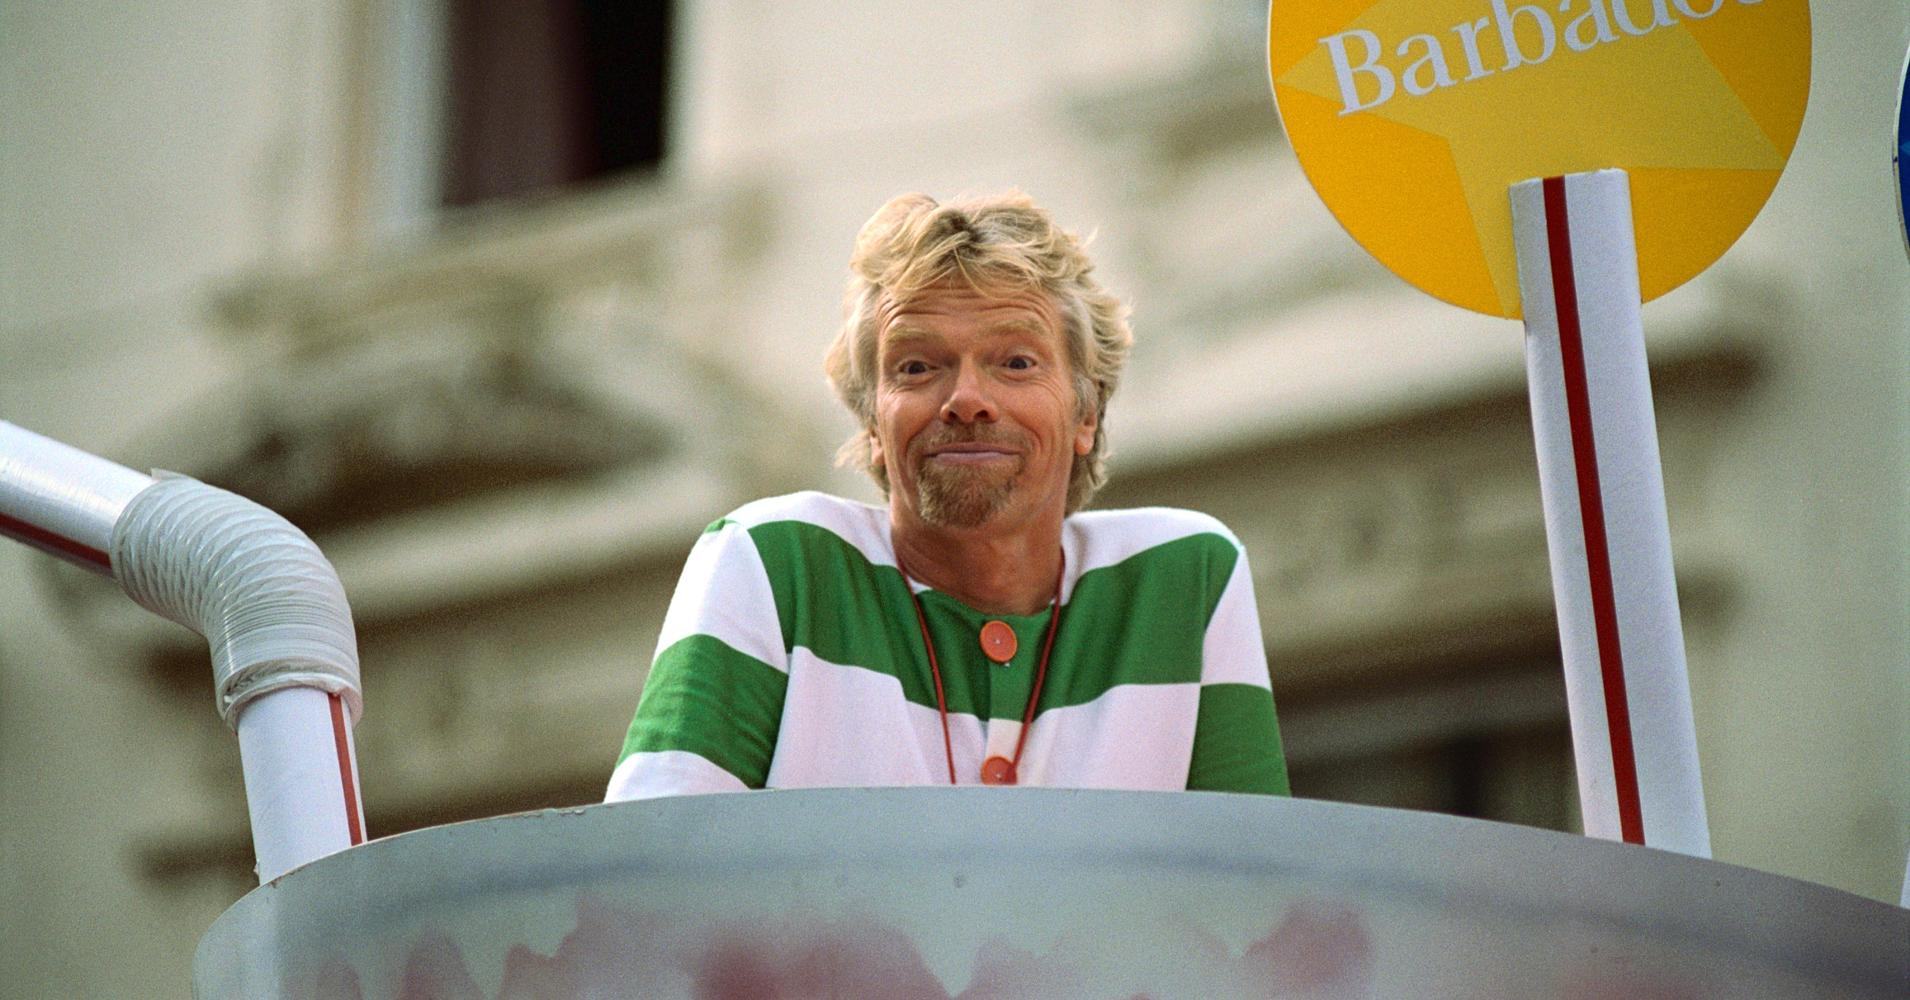 Richard Branson Drinks 20 Cups Of Tea A Day photo